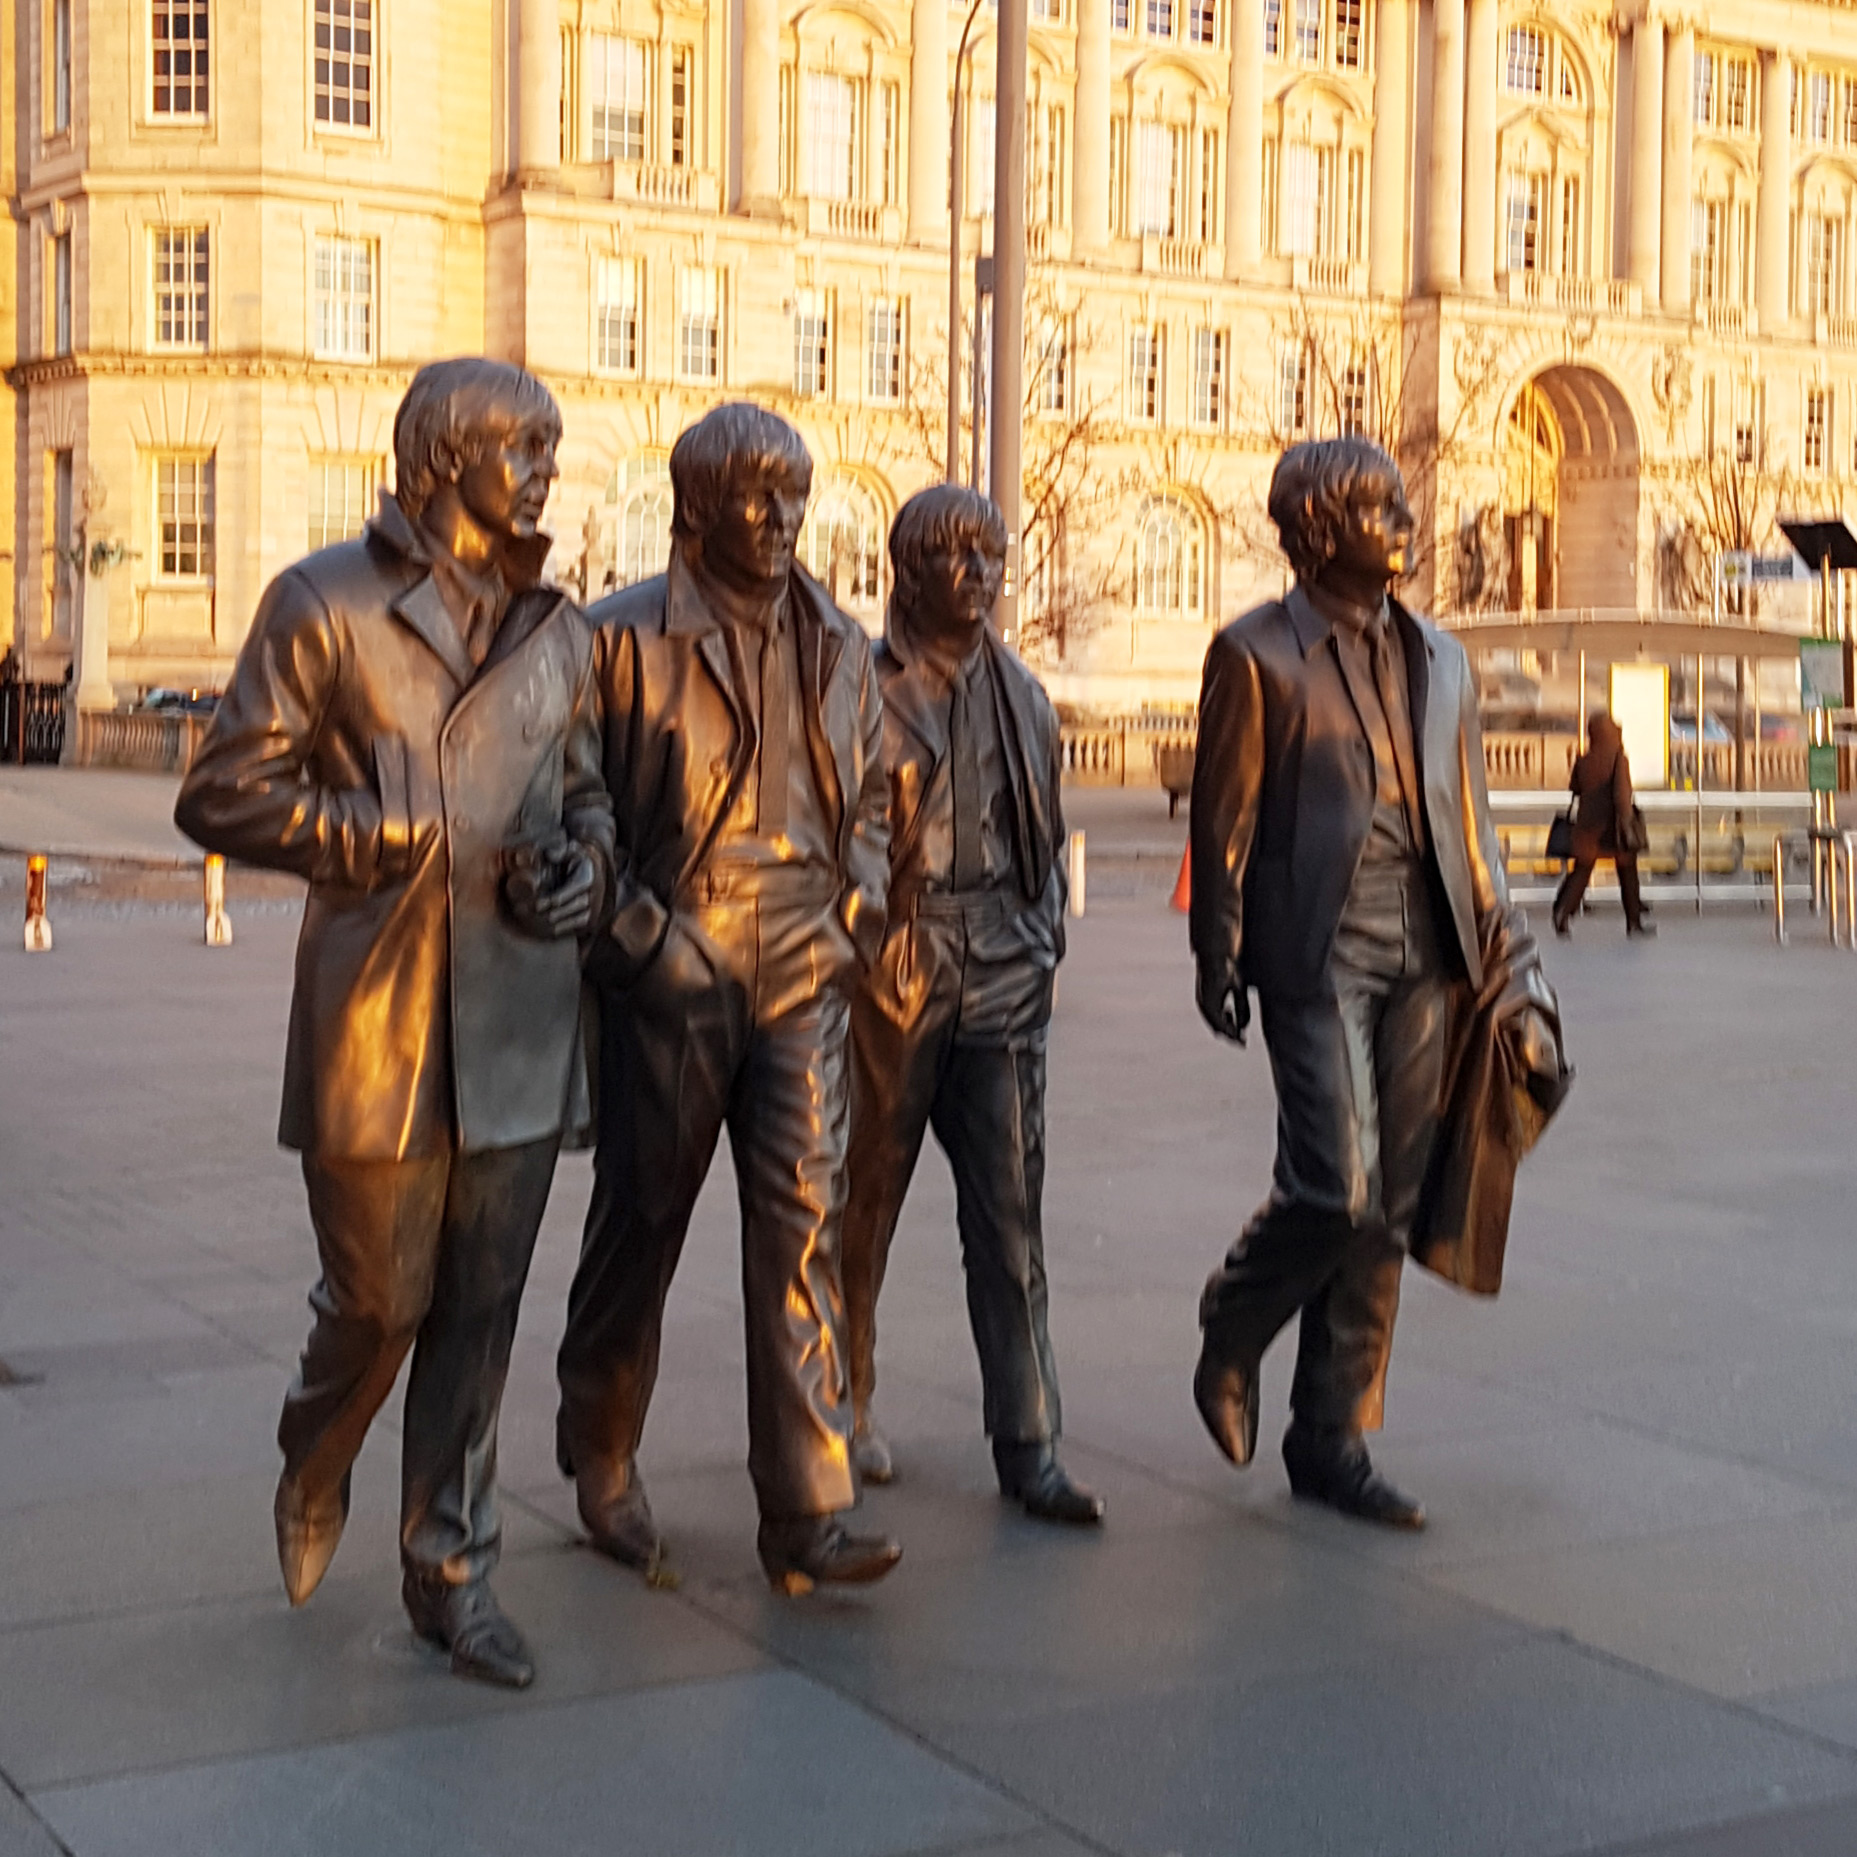 Beatles Statues – A Guide to Fab Four Monuments in Liverpool